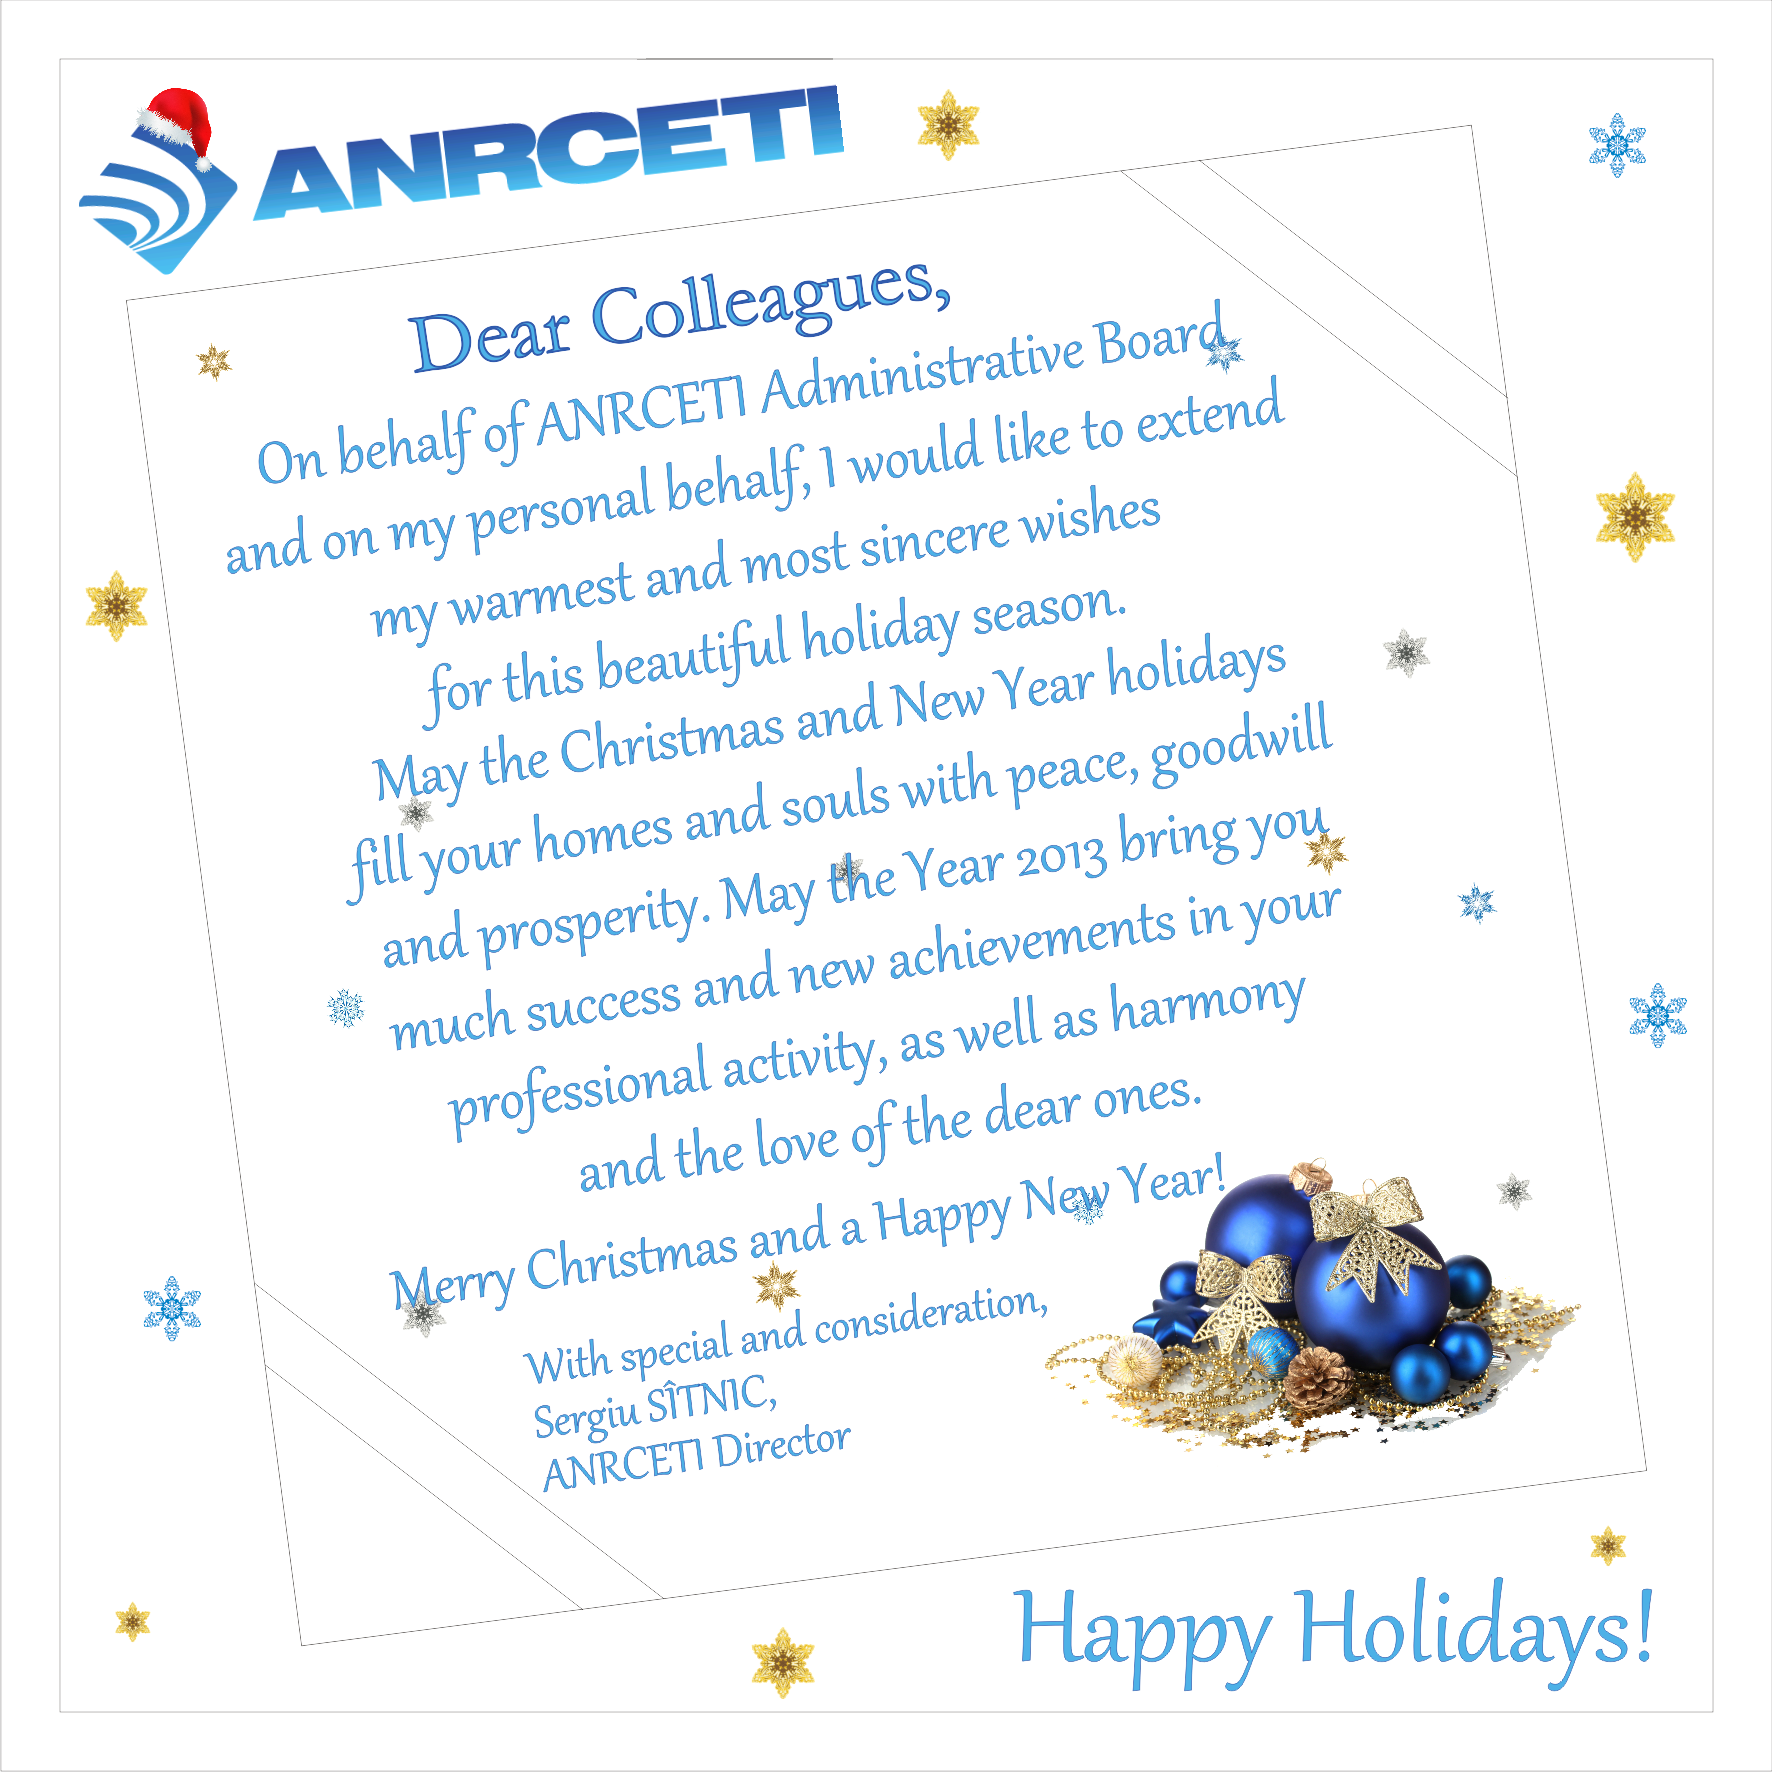 Anrceti management wishing you happy holidays anrceti is conveying a greeting message to anrceti staff partners and to all the employees engaged in electronic communications and information technology kristyandbryce Gallery